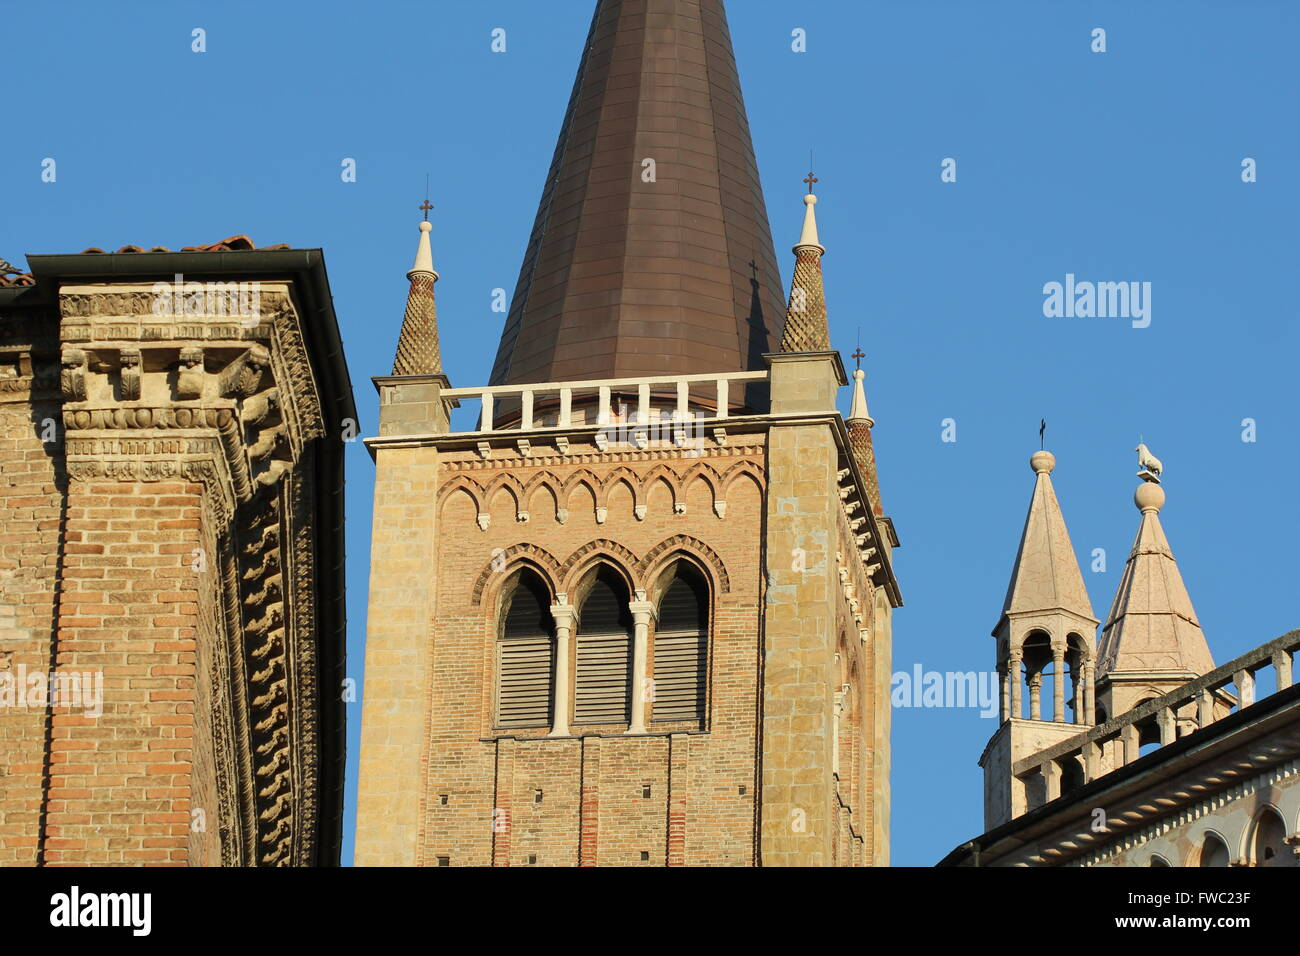 Duomo (Cathedral) Bell Tower and Baptistry, Parma, Emilia-Romagna, Italy - Stock Image